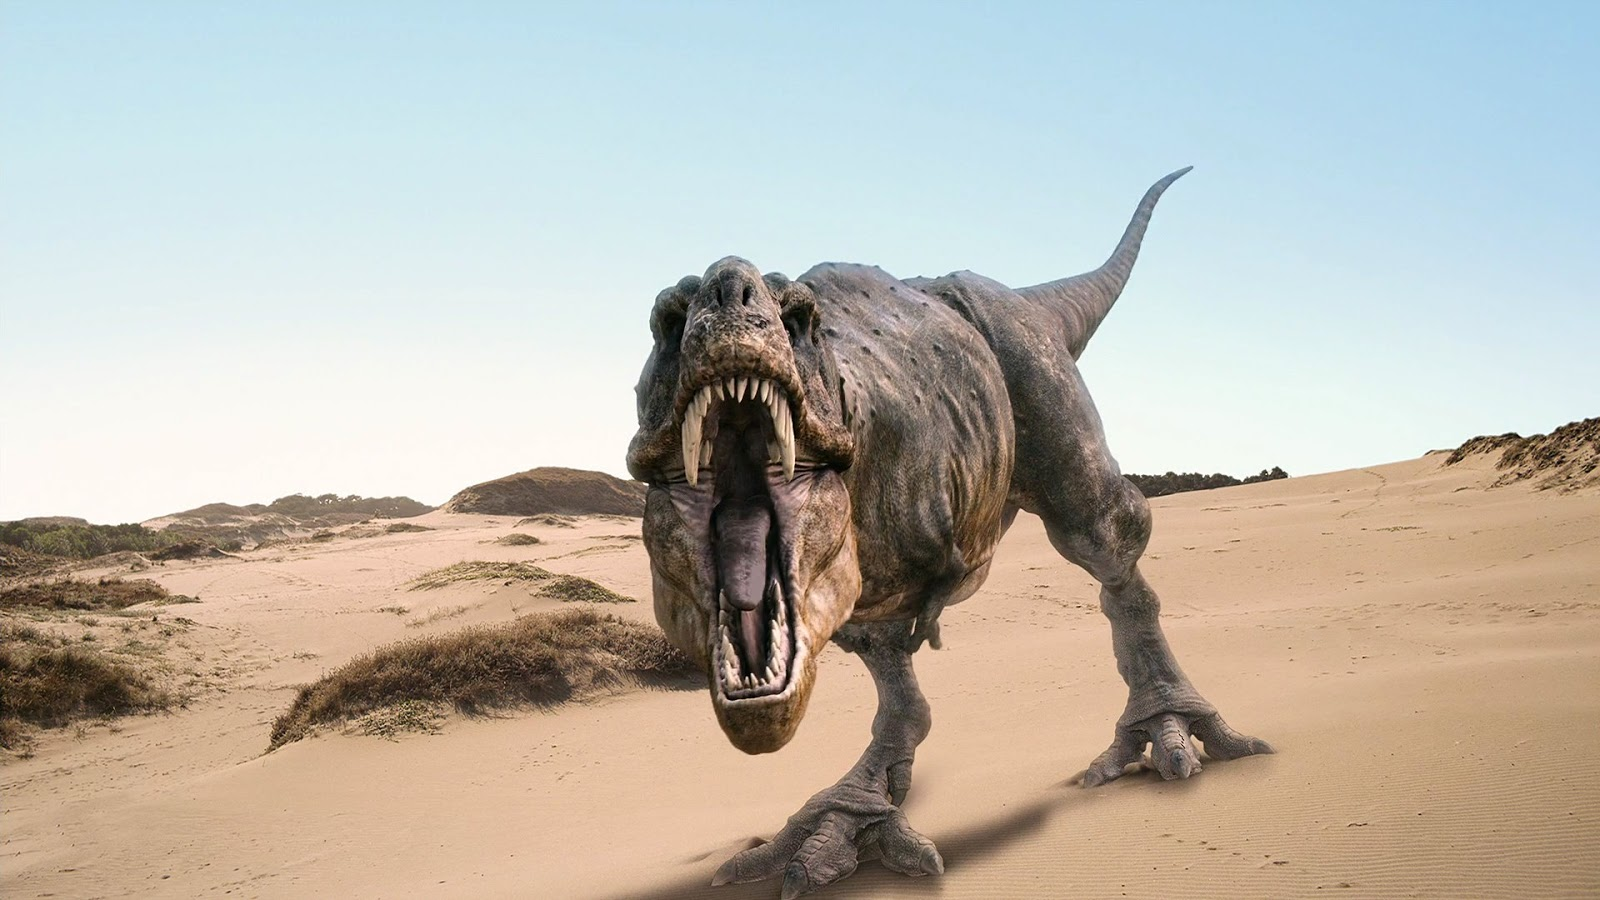 world all animals dinosaurs new wallpapers 2013